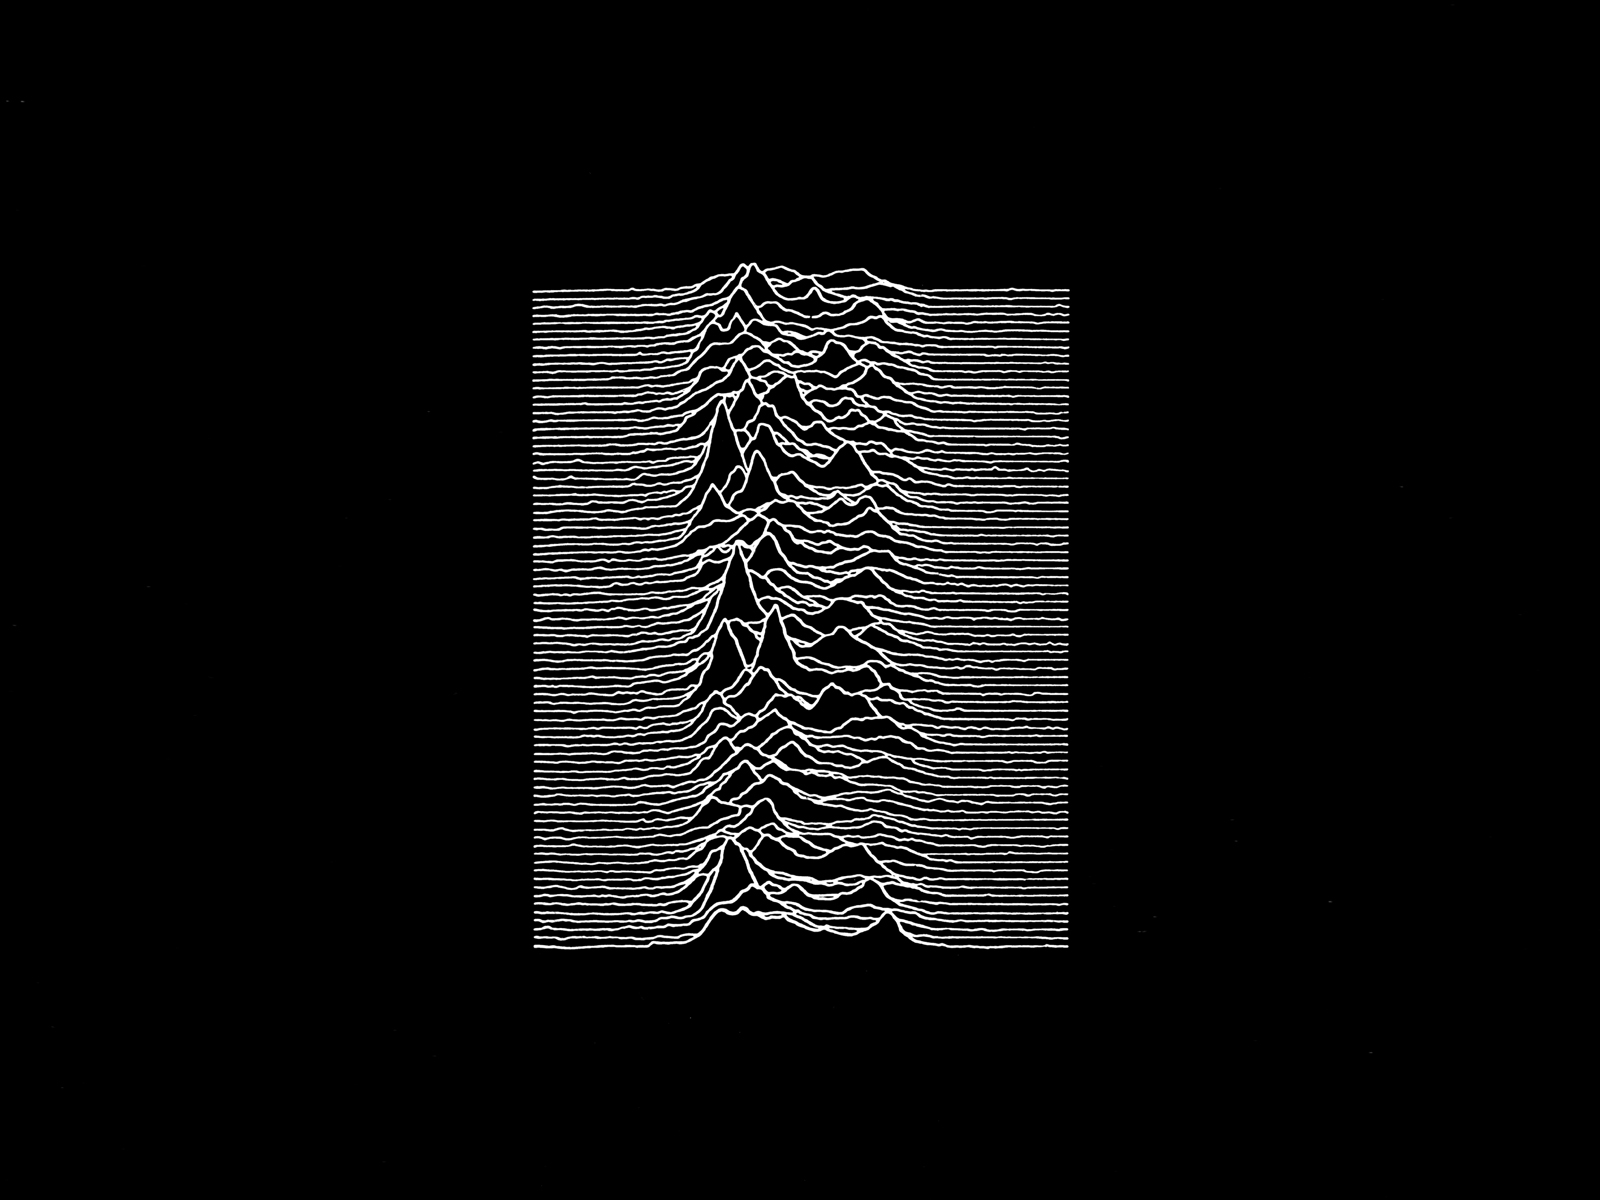 Joy Division Unknown Pleasures desktop wallpaper